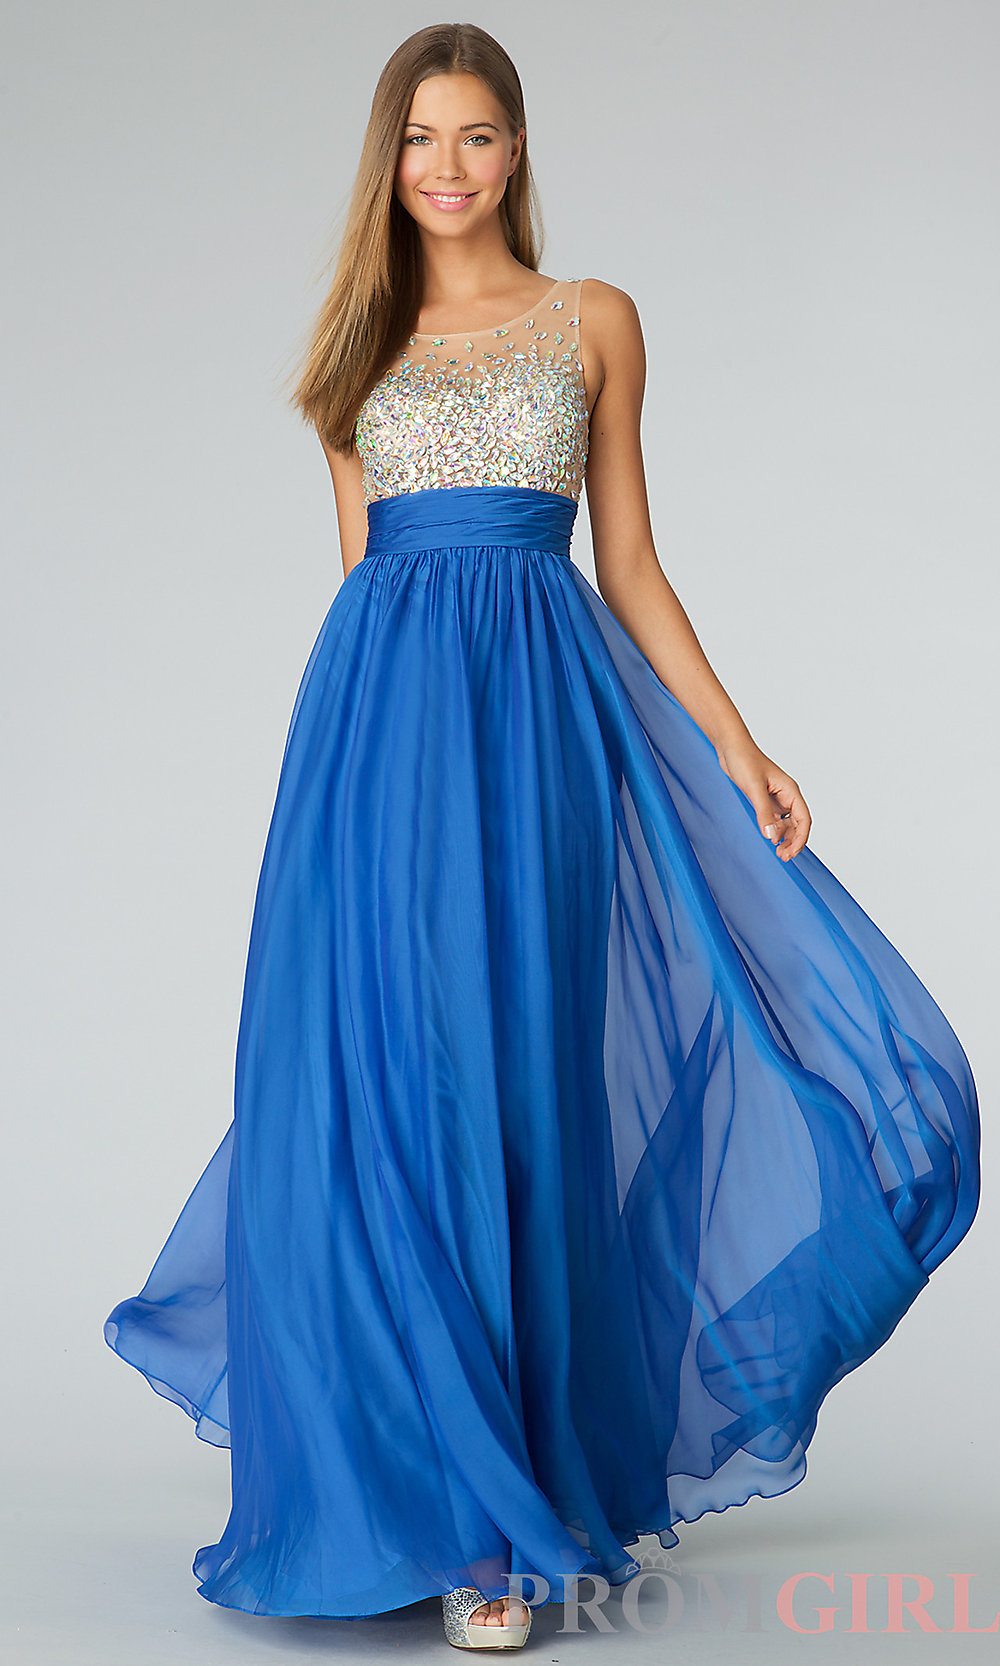 latest prom dresses and fancy gowns for weddings and parties